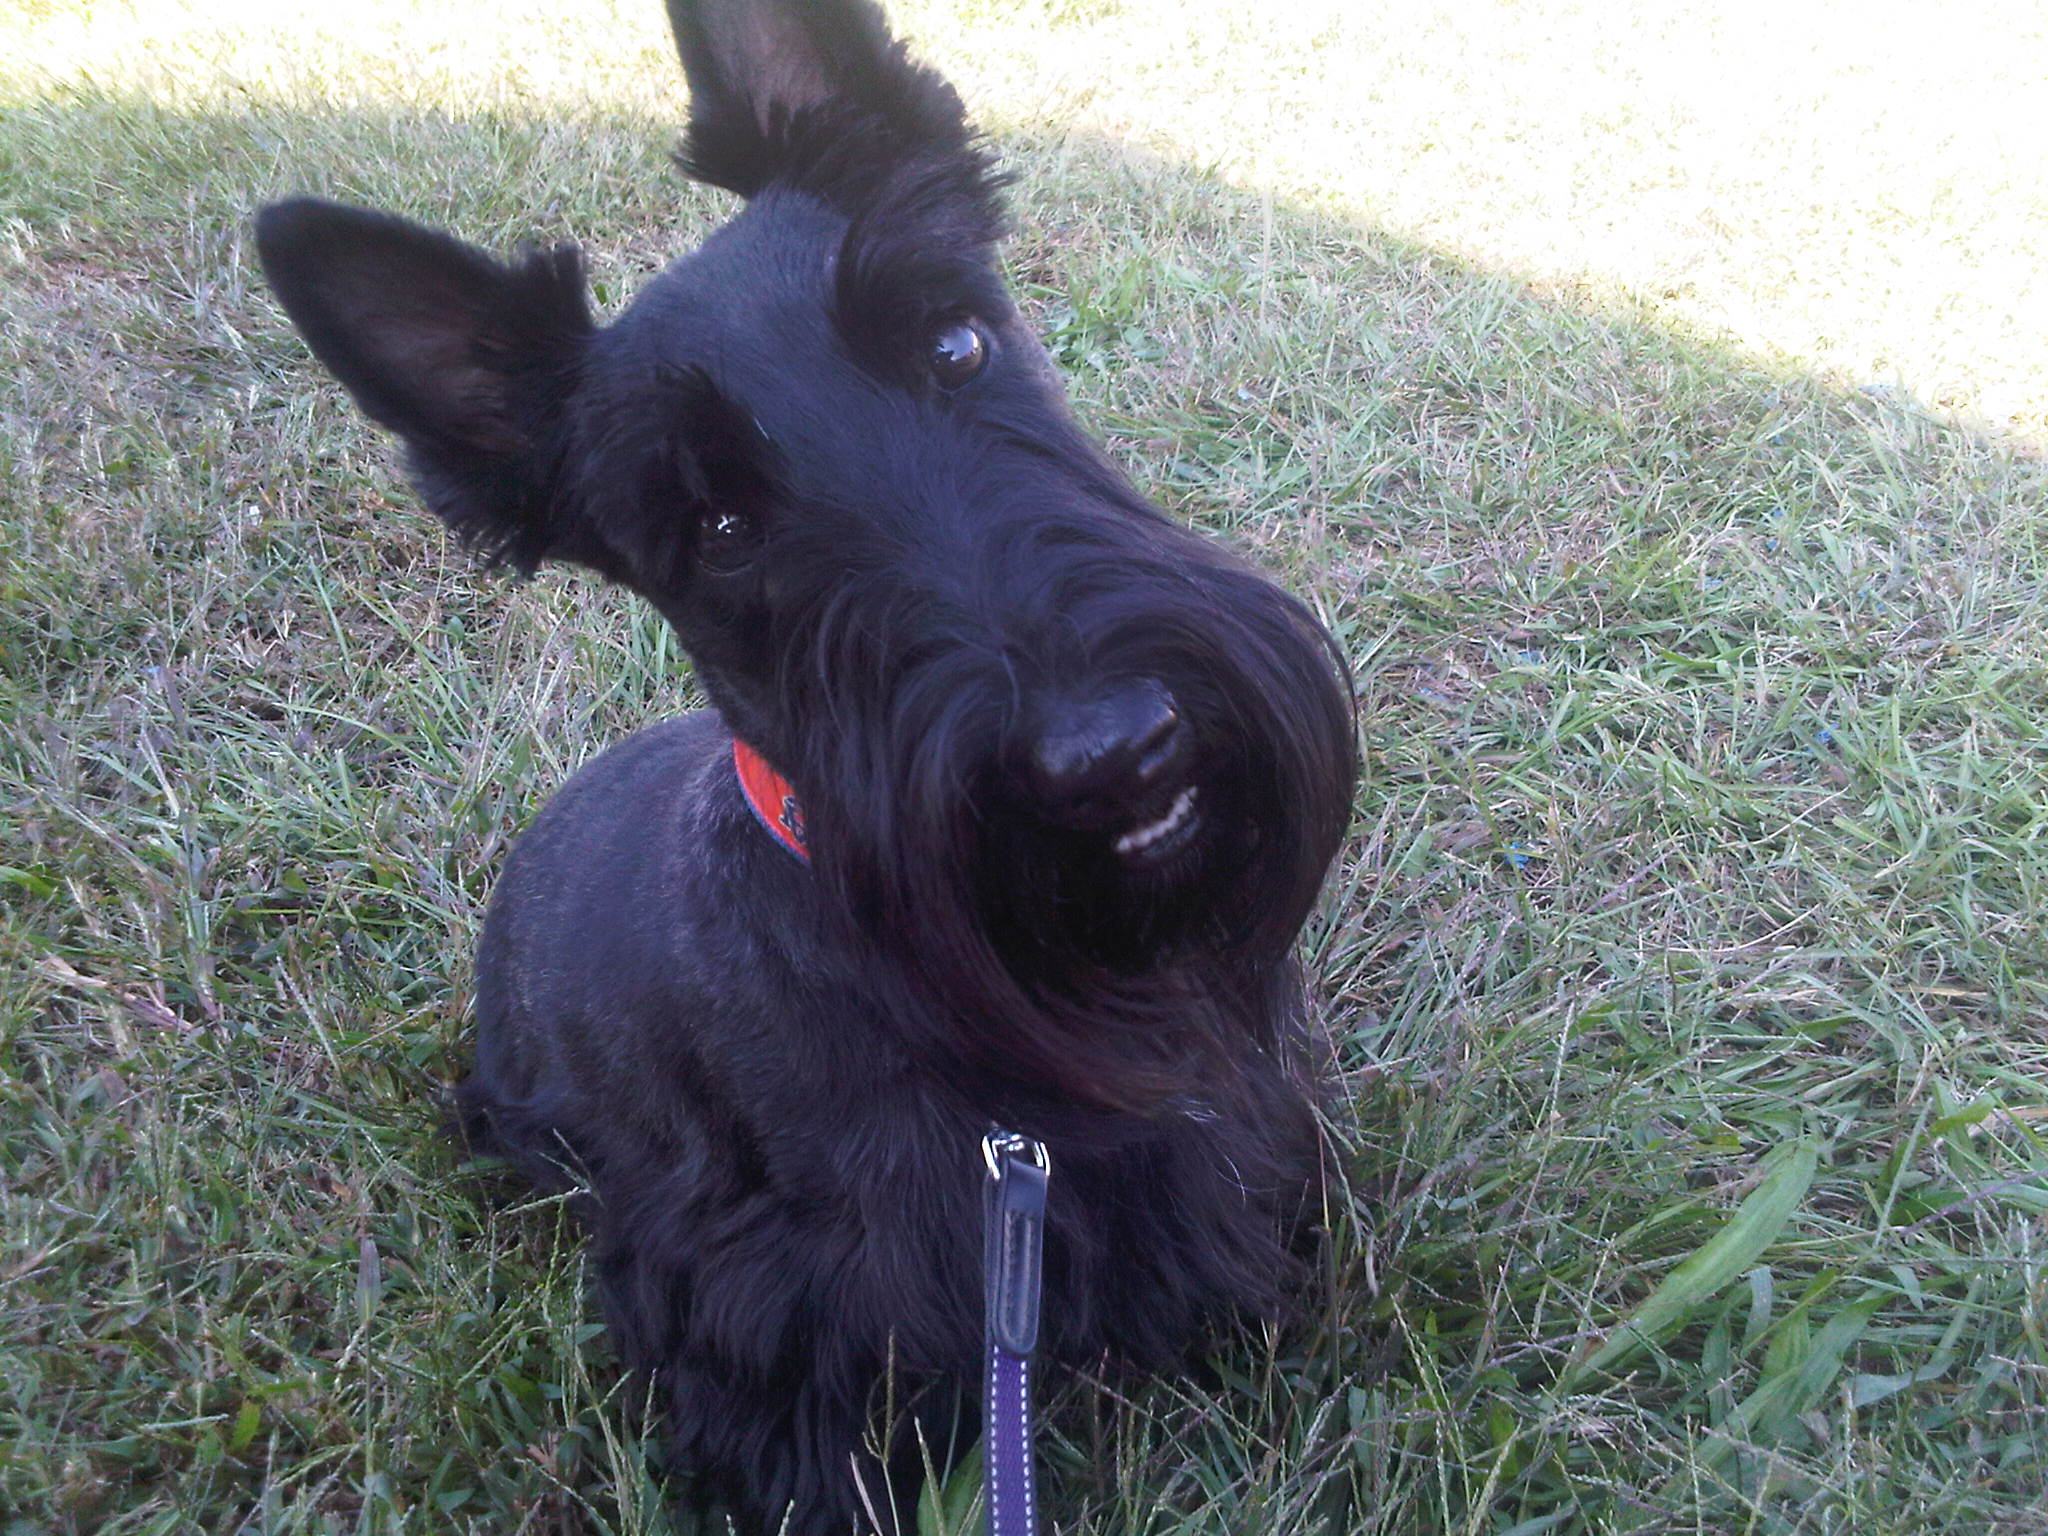 Scottish Terrier Dog: Scottish Funny Scottish Terrier Dog Face Breed